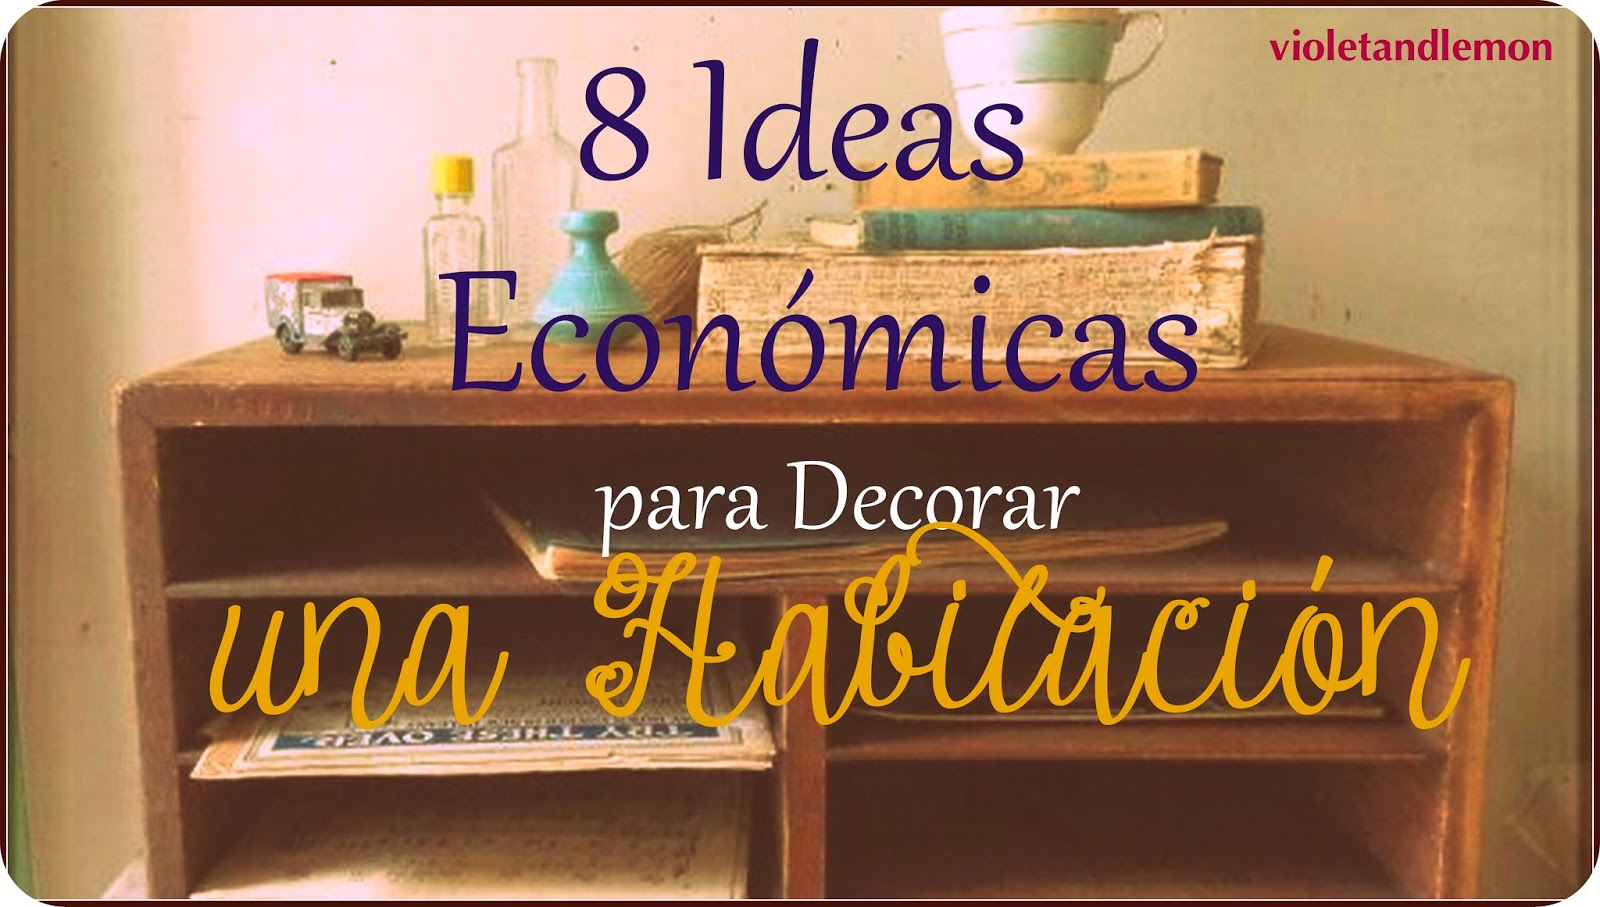 Ideas Para Decorar El Hogar Economicas Decorar Habitacion Con Fotos Free Ideas Para Decorar De